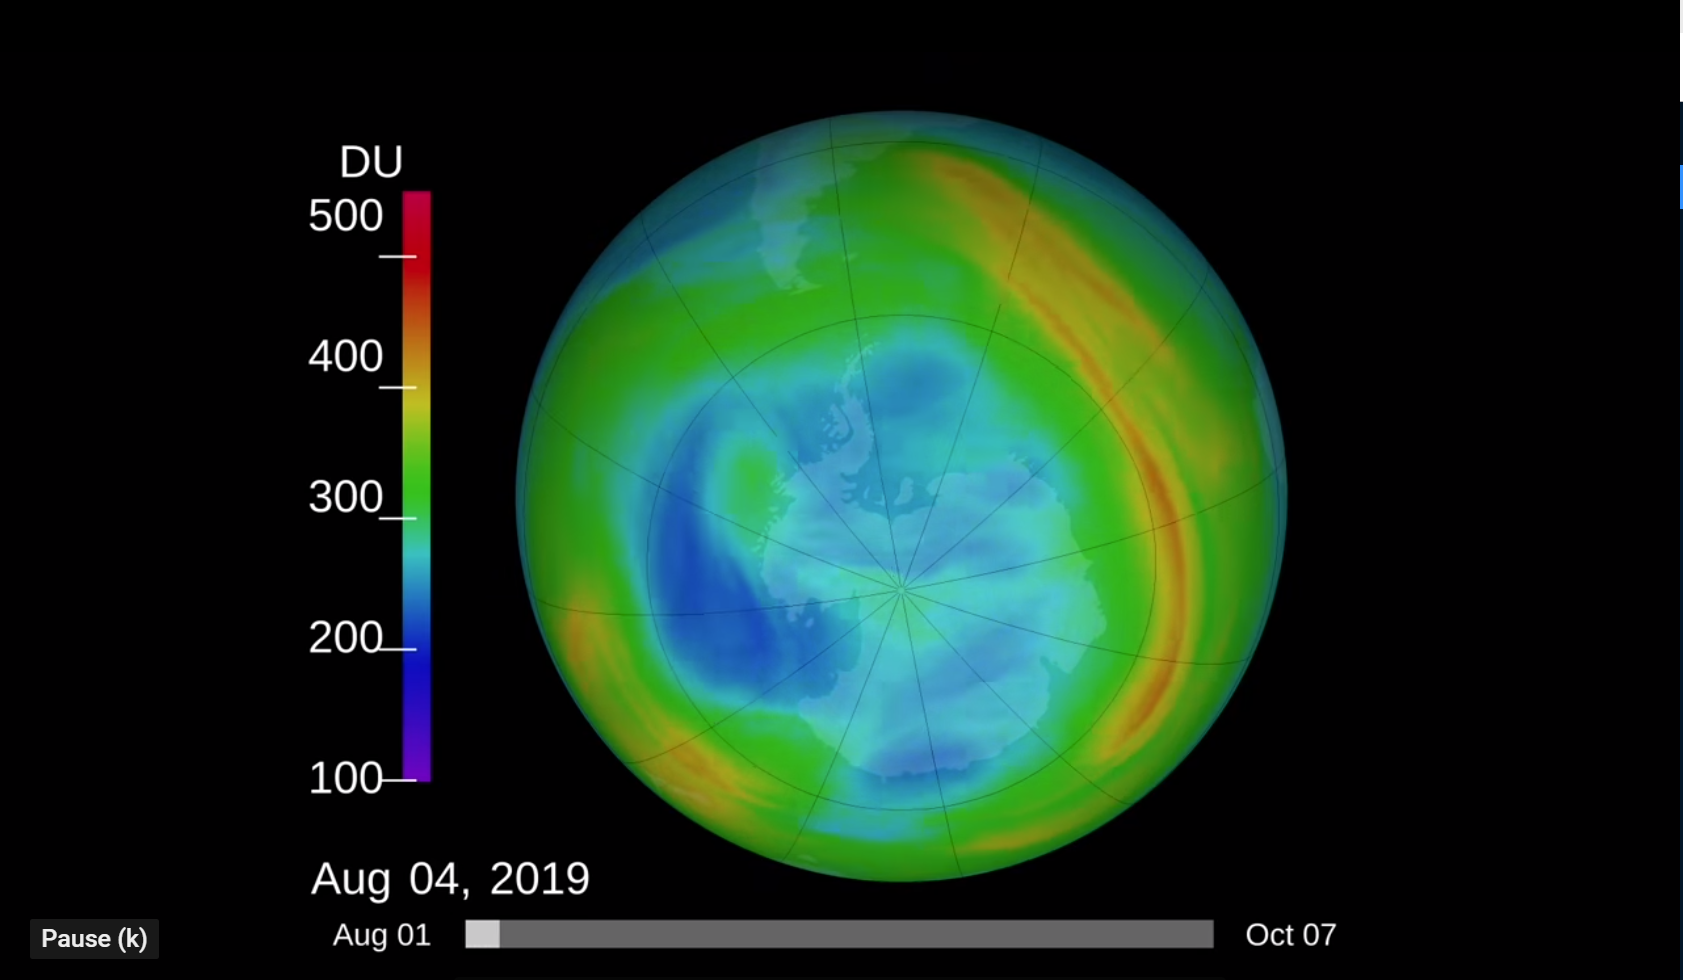 The Ozone Hole - Smaller than when it Was Discovered